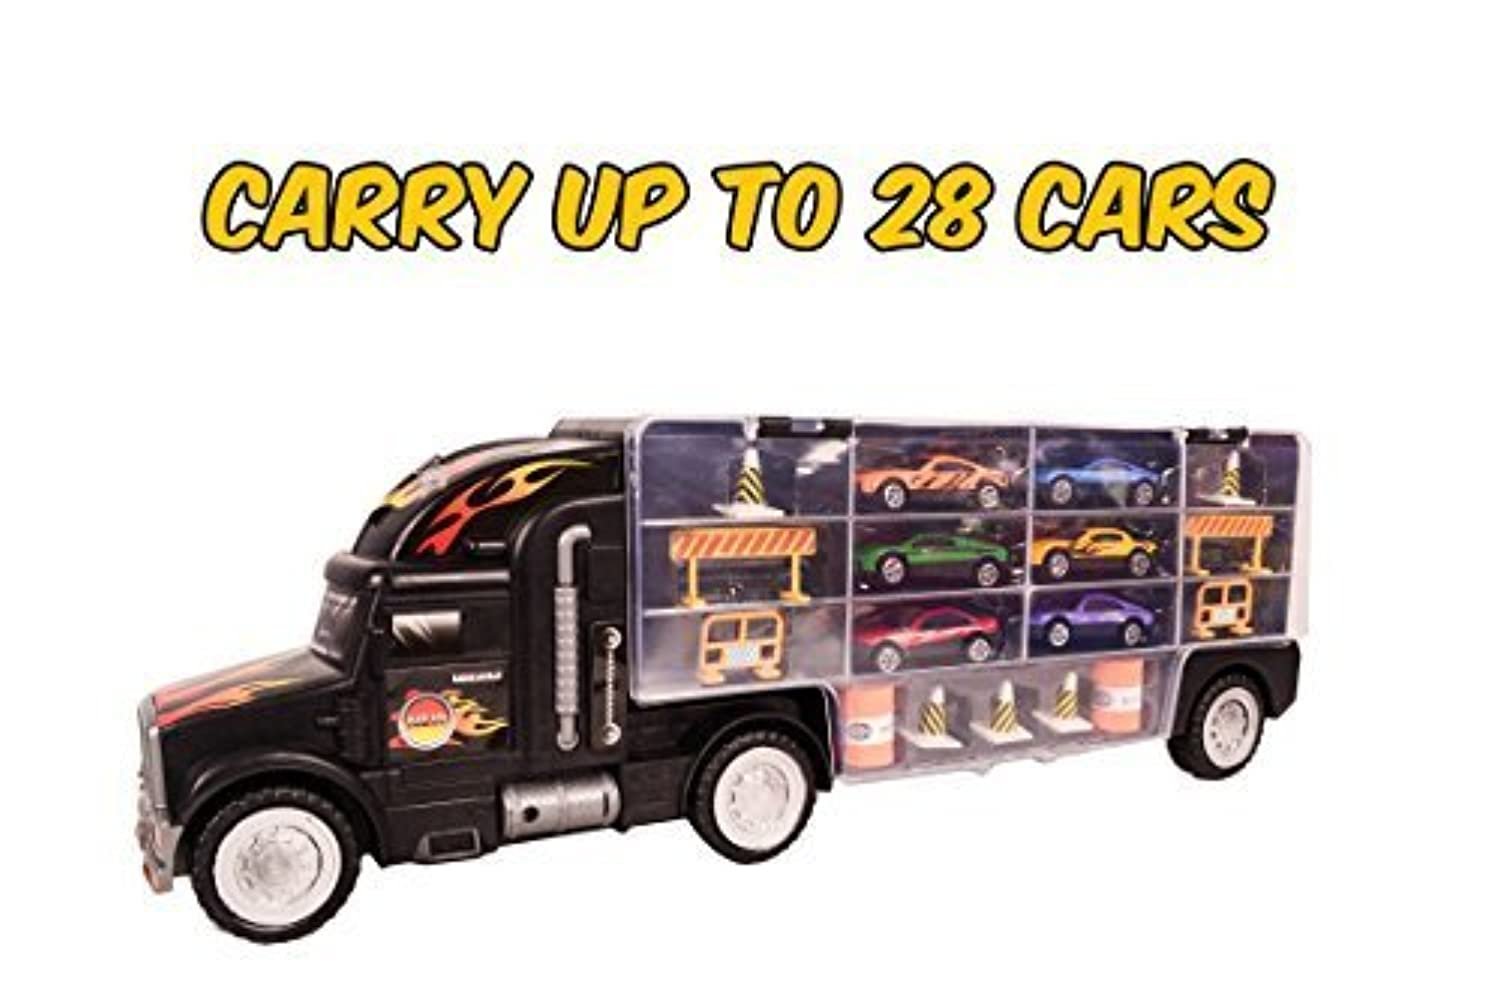 Toy Car Holder Truck : Long carrier truck toy car transporter includes metal